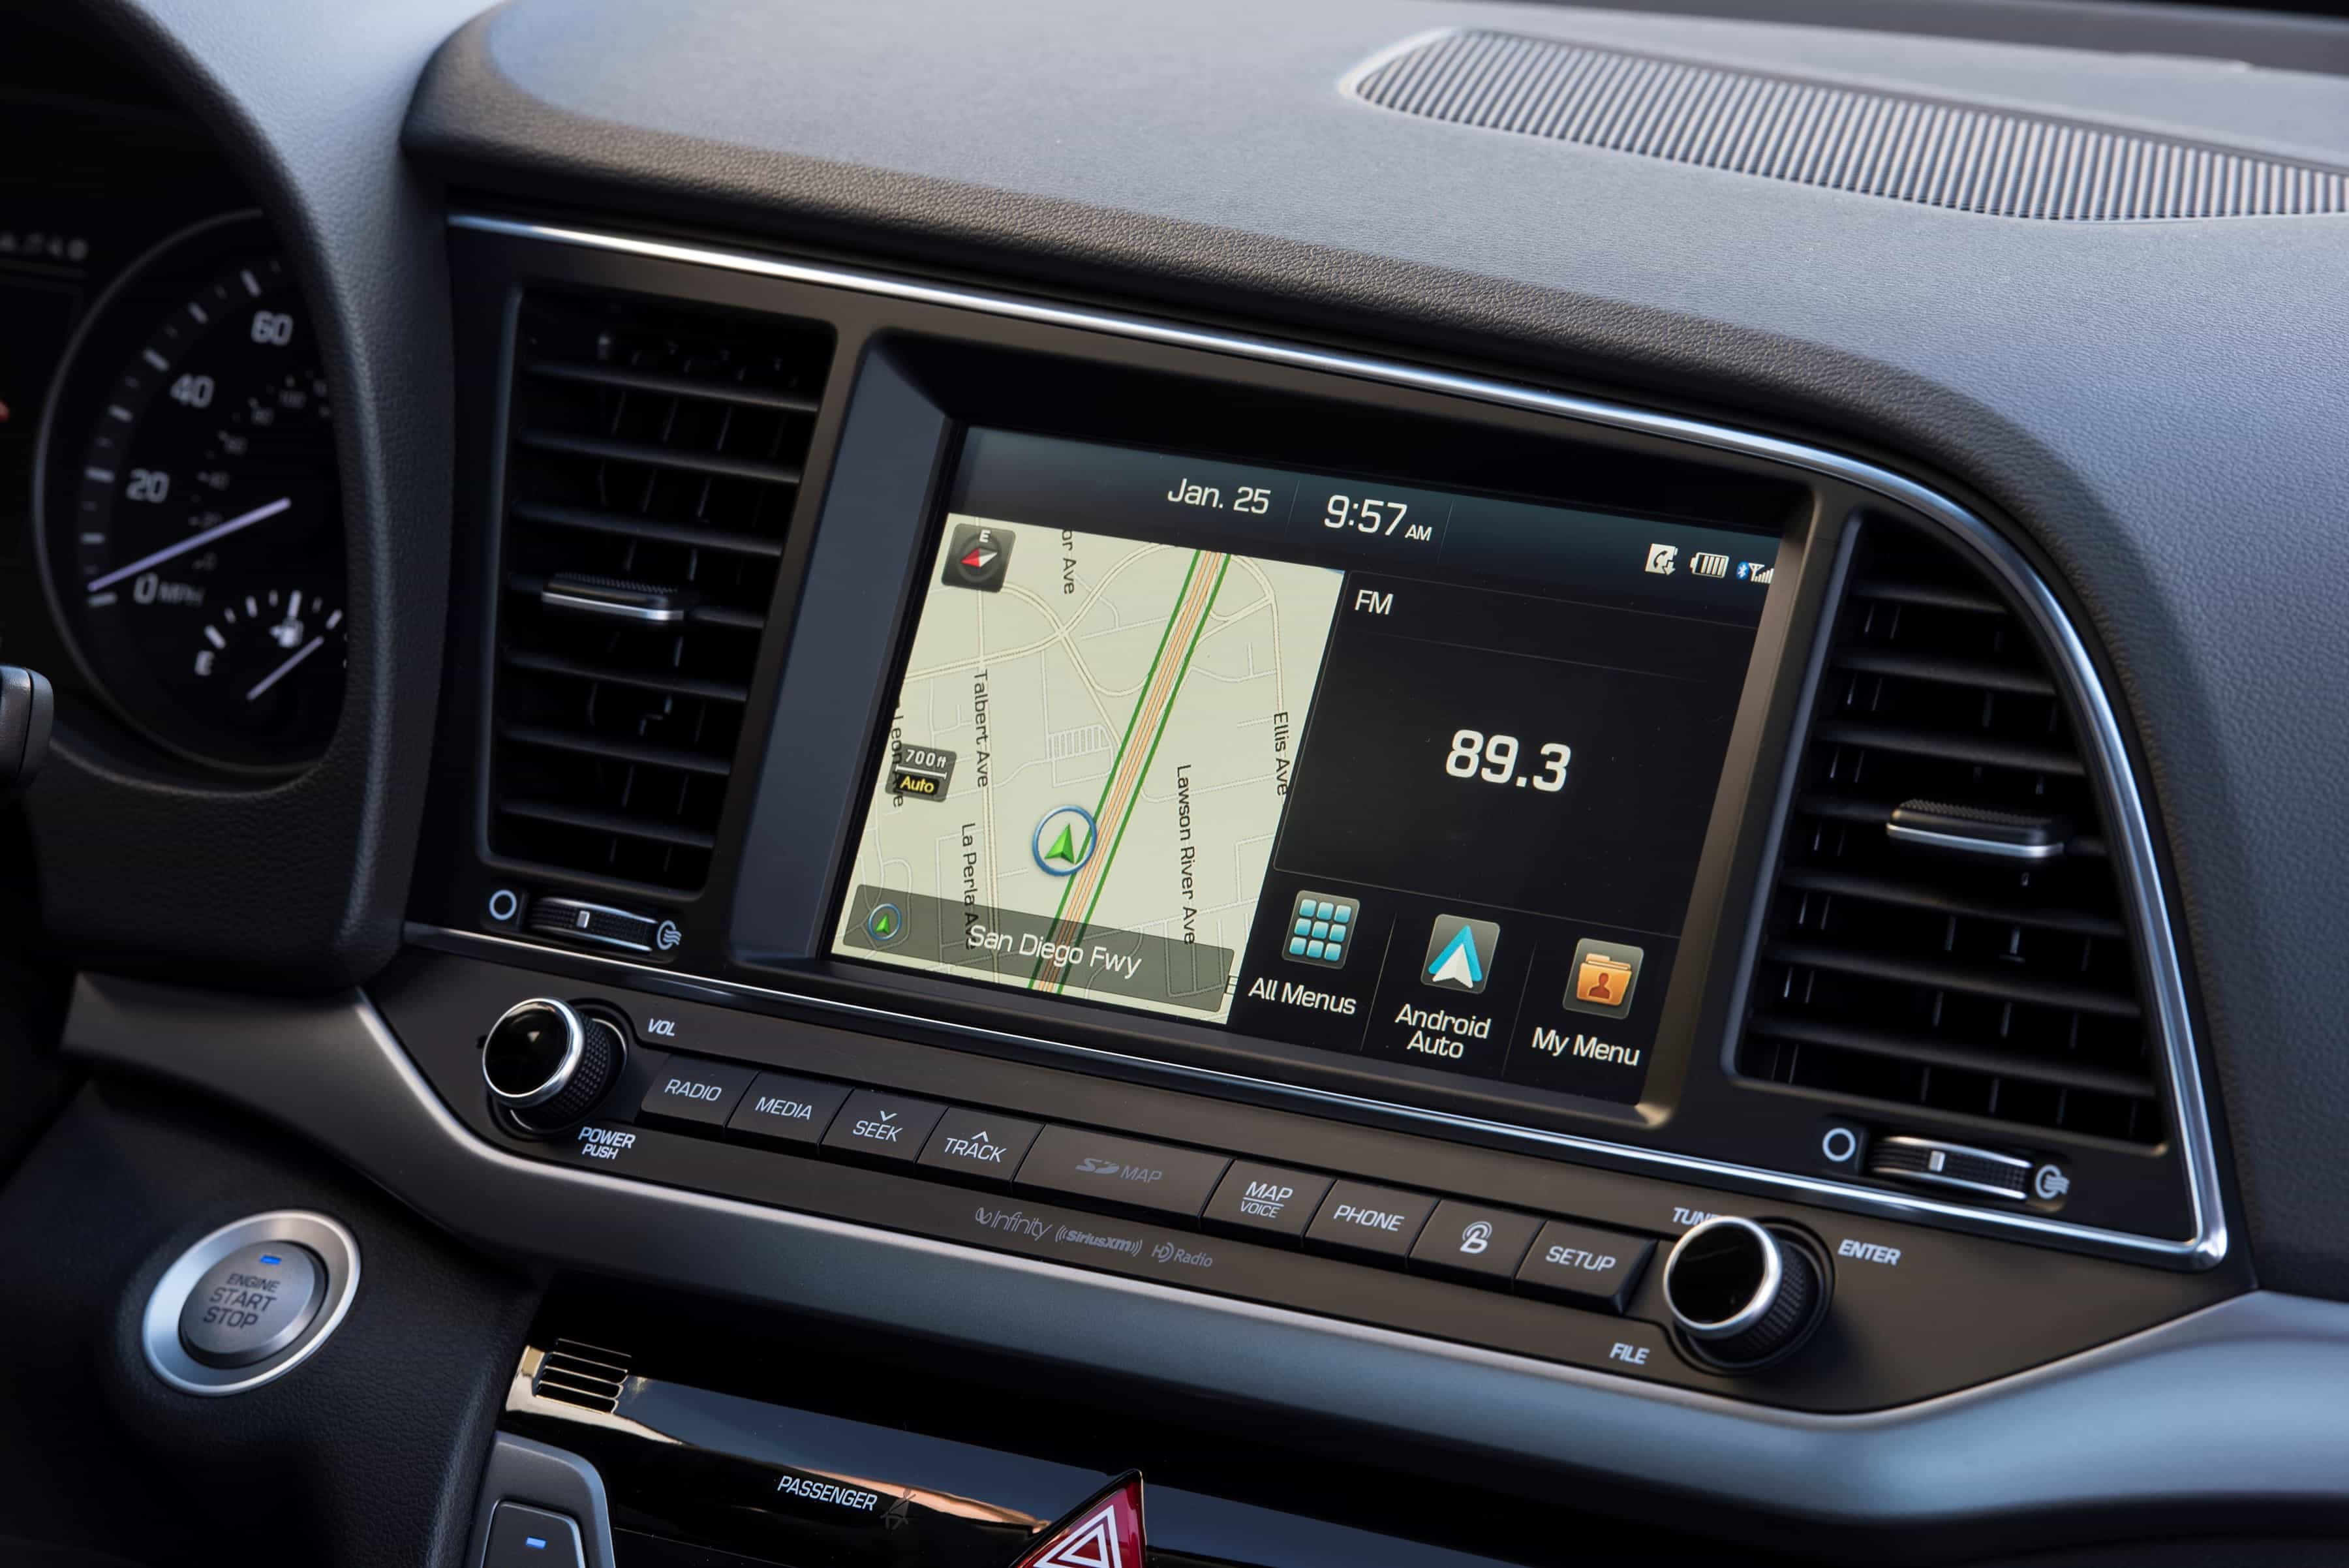 Hyundai update to Android Auto and Apple CarPlay How-to instructions